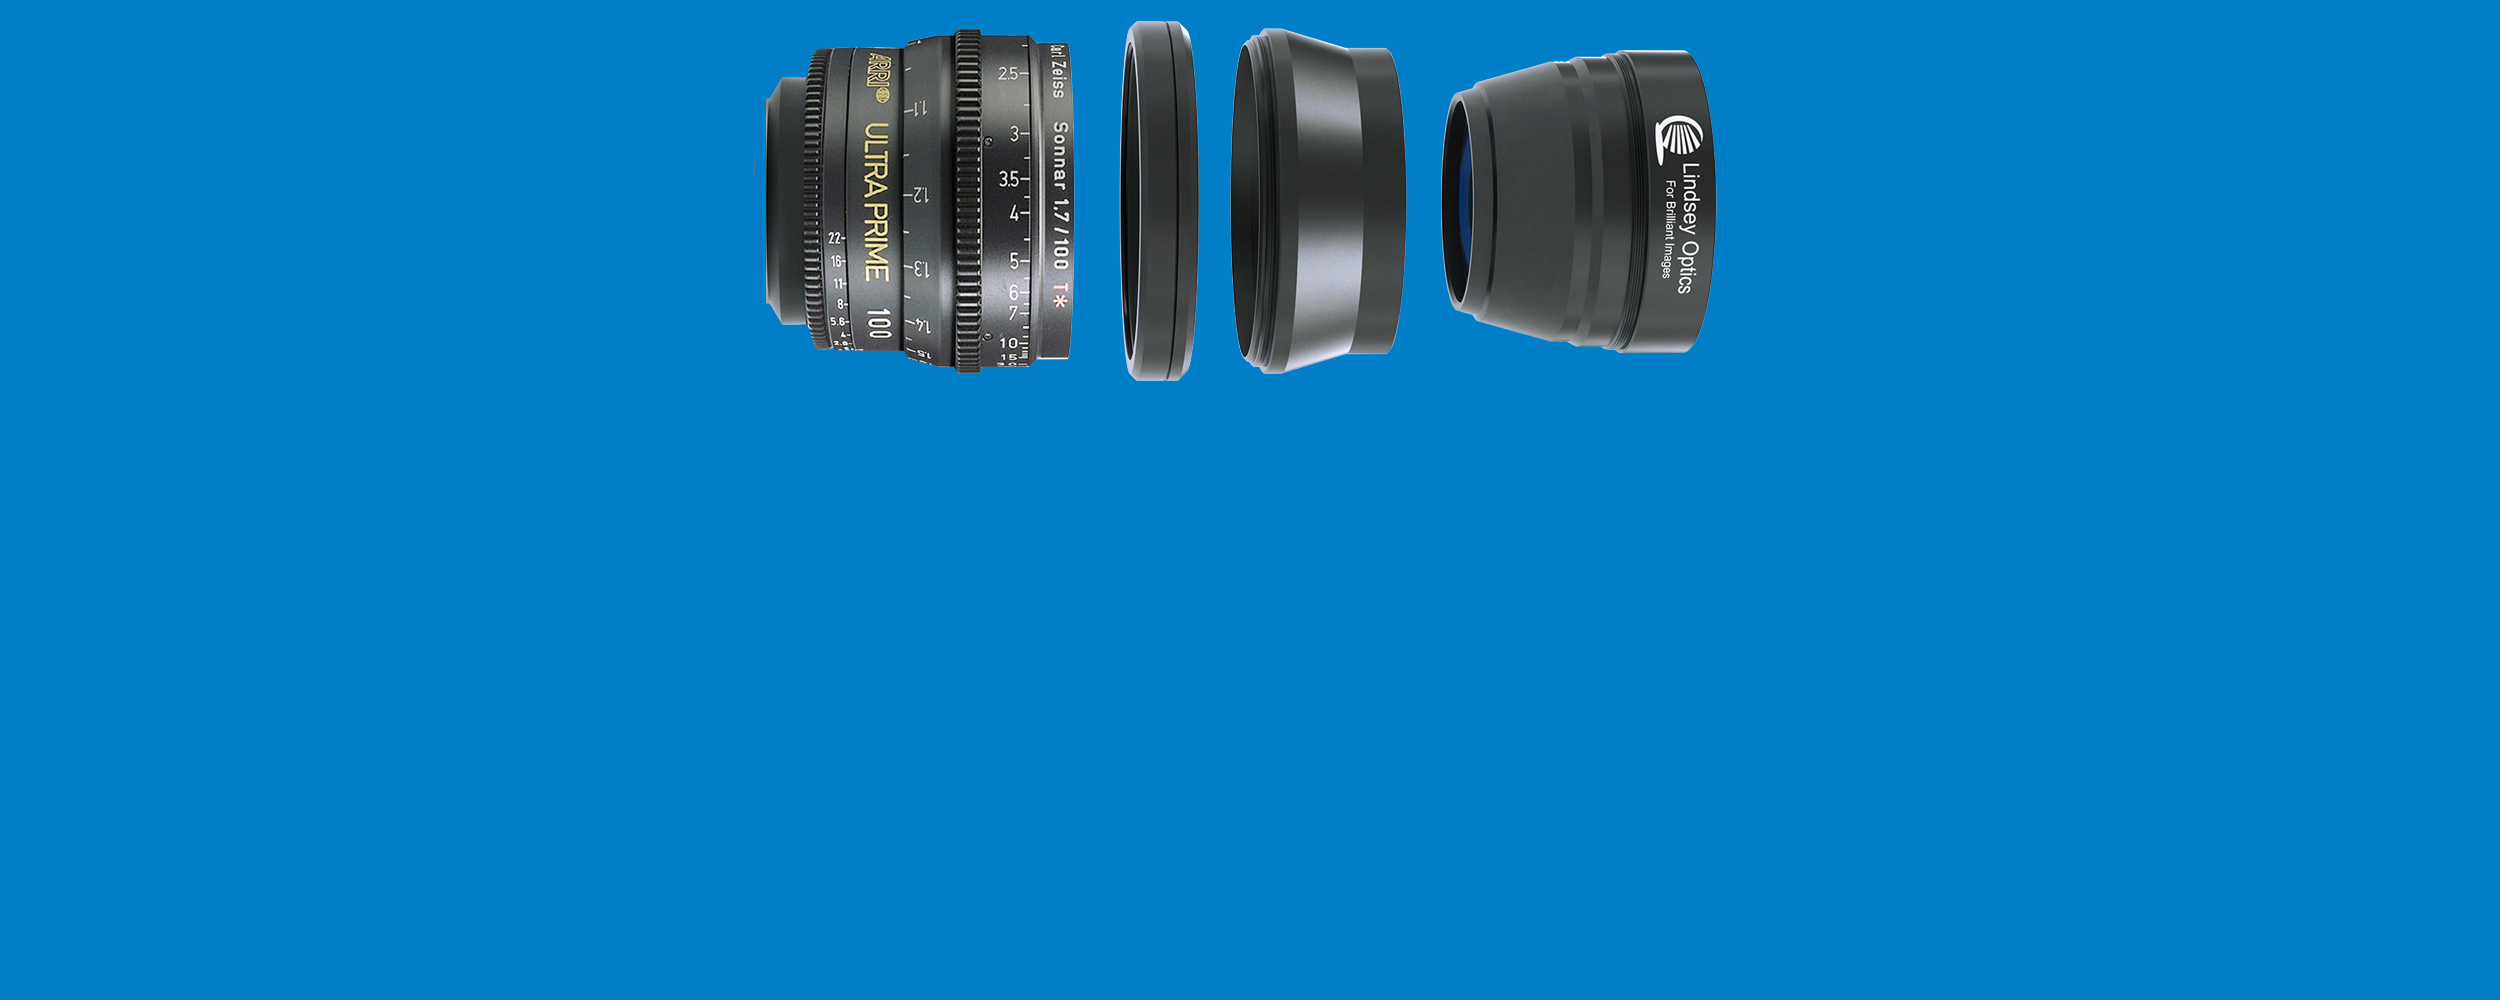 Lindsey Optics Brilliant Macro Attachment Lenses